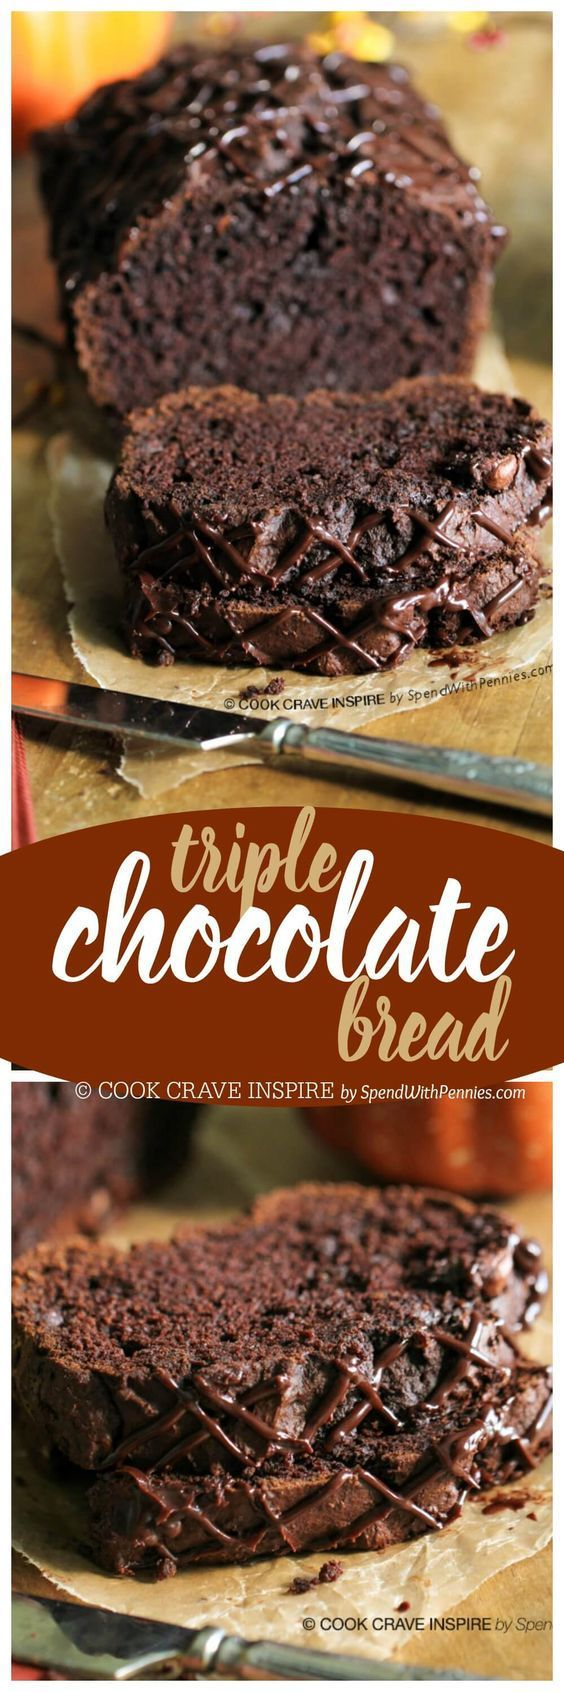 Triple Chocolate Bread Recipe via Spend With Pennies - A rich chocolatey quick bread with a secret ingredient to keep it extra moist! This loaf contains dessert and breakfast all in one!